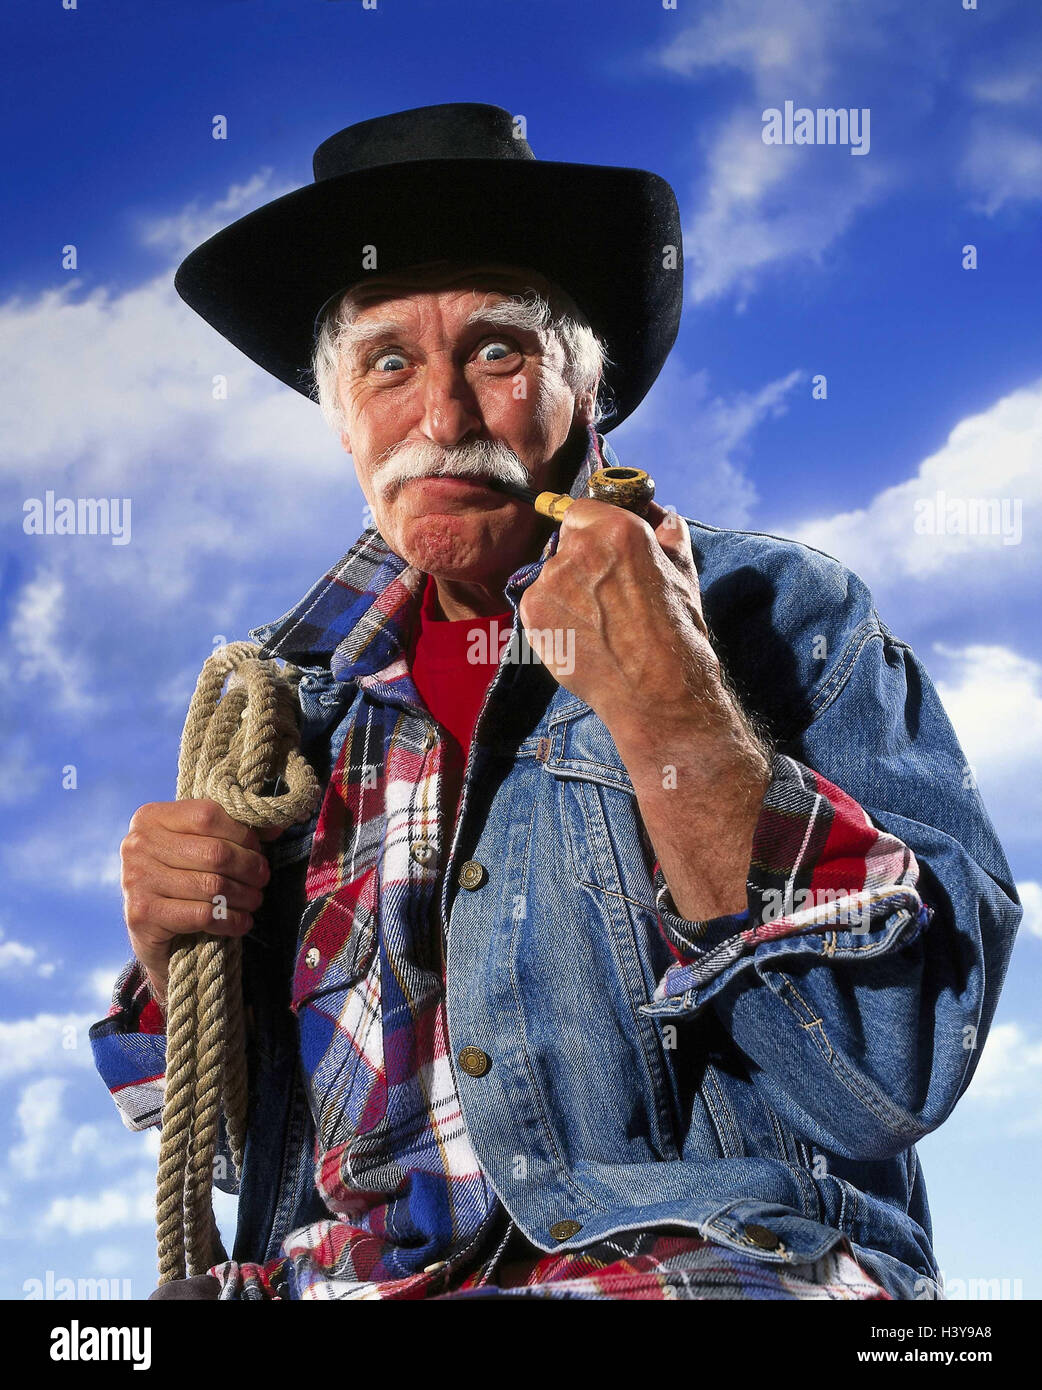 Senior, 'cowboy', whistle, lasso, facial play, decided, energetically, half portrait, cloudy sky Senior, - Stock Image